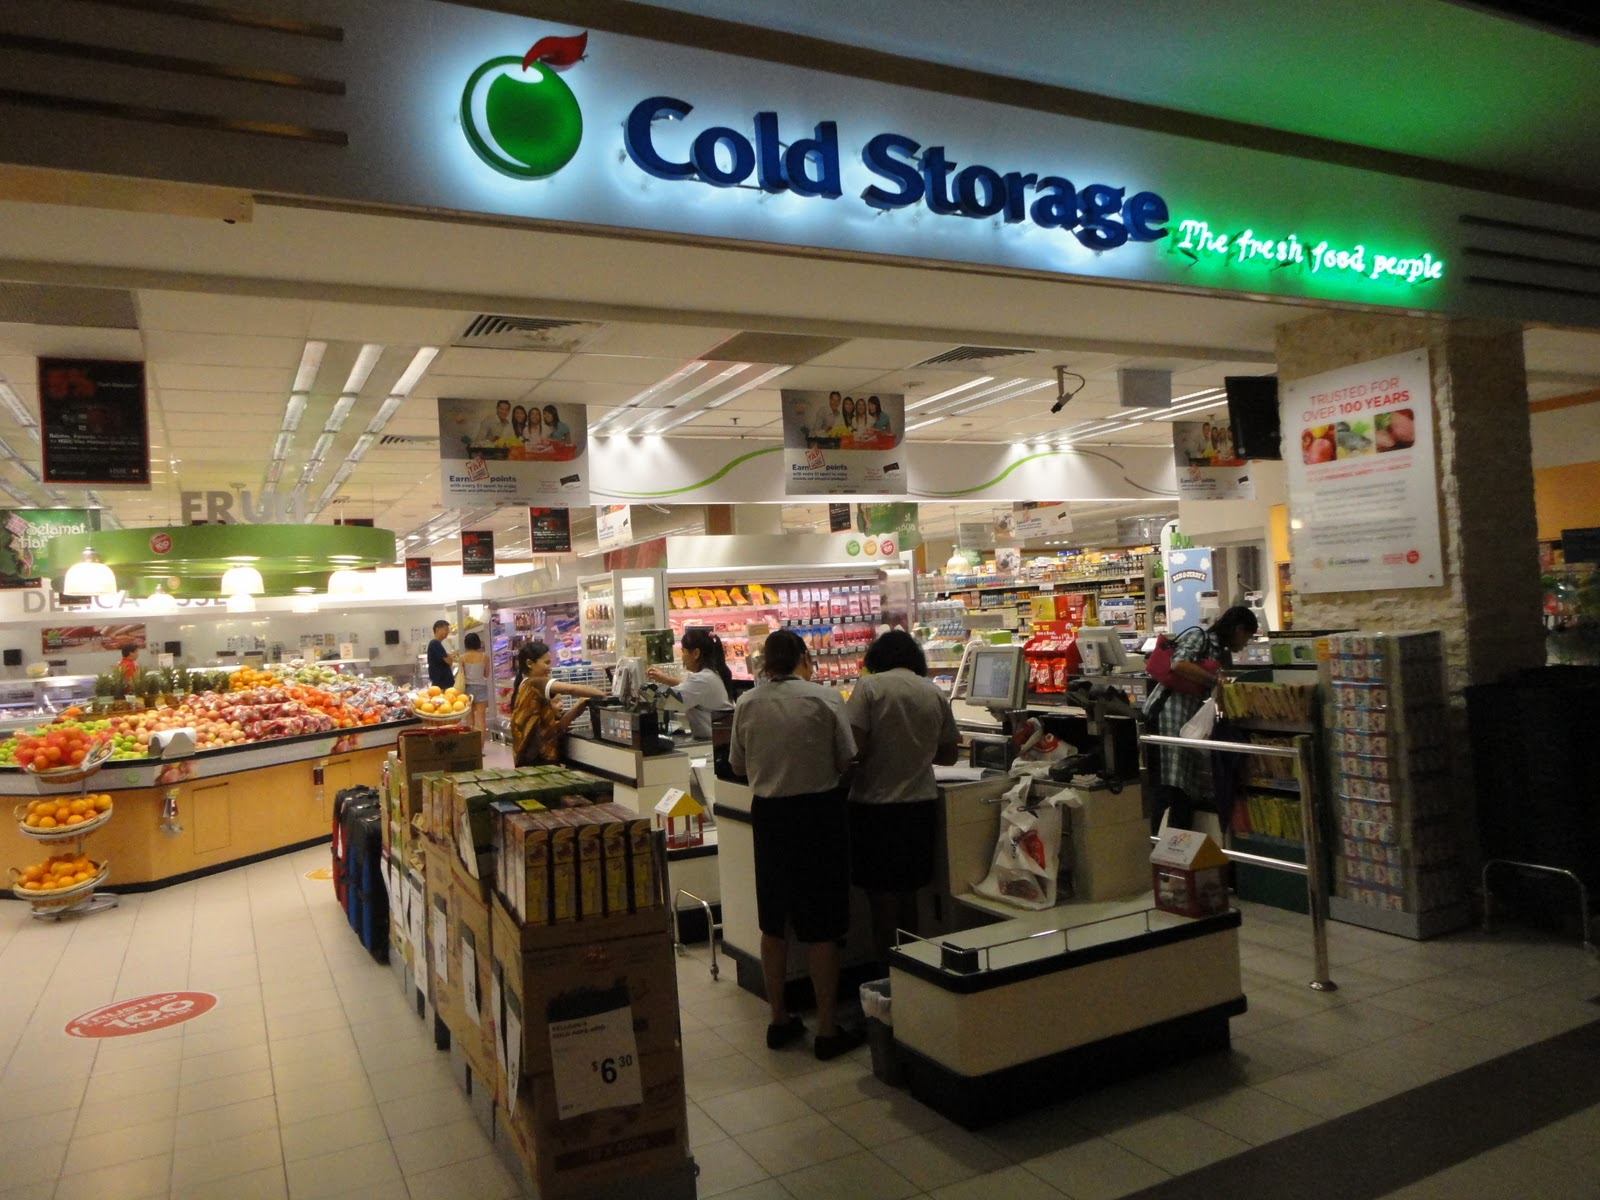 Cold Storage at Anchorpoint & MyQueenstopedia #2 - Supermarket Guide Part I|My Queenstown